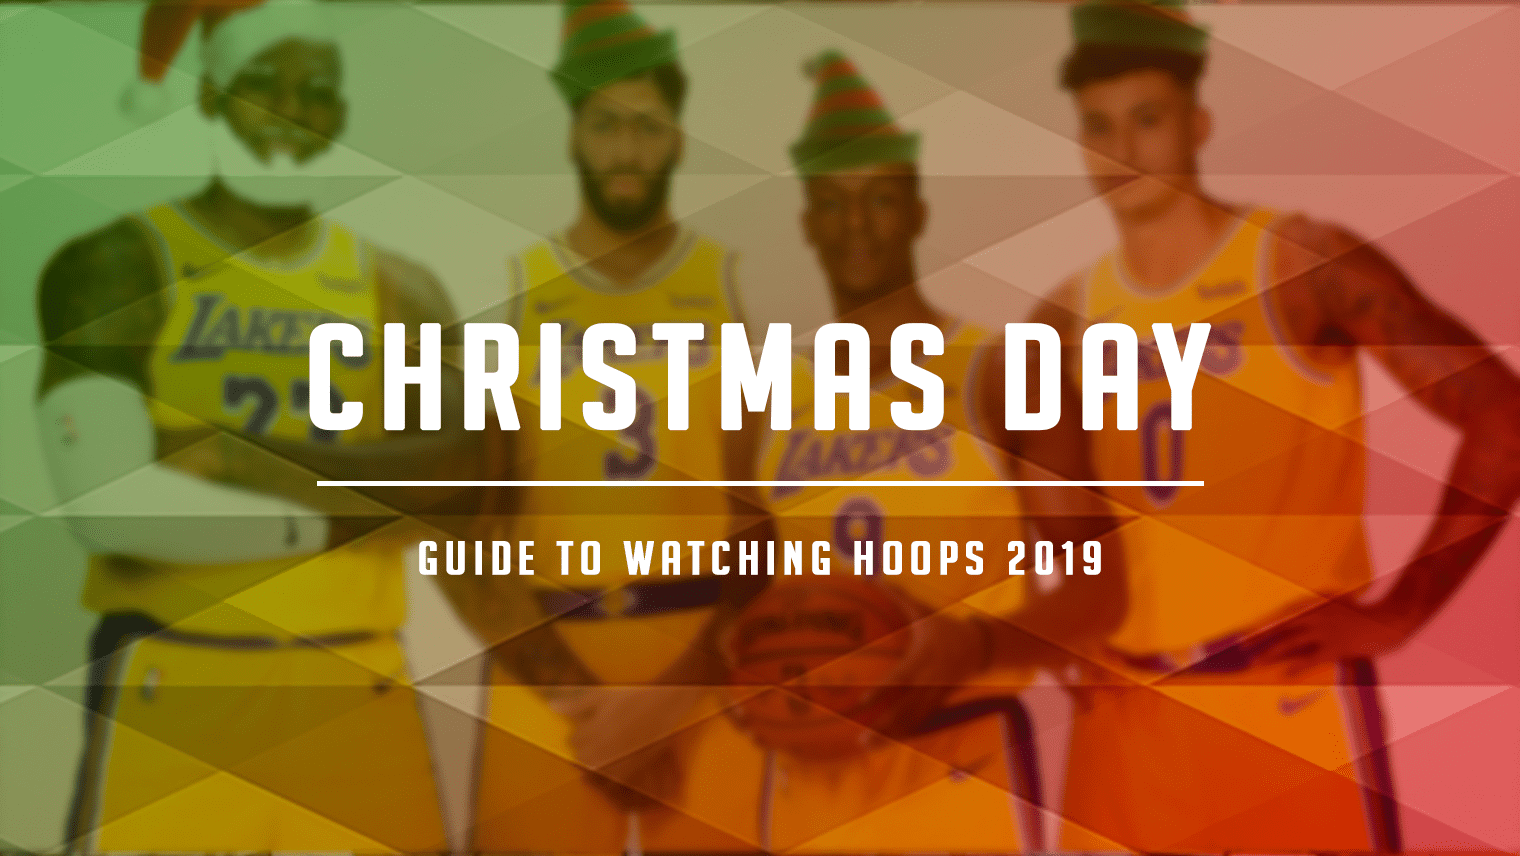 Christmas 2019 Hoops Guide: Ranking the Games